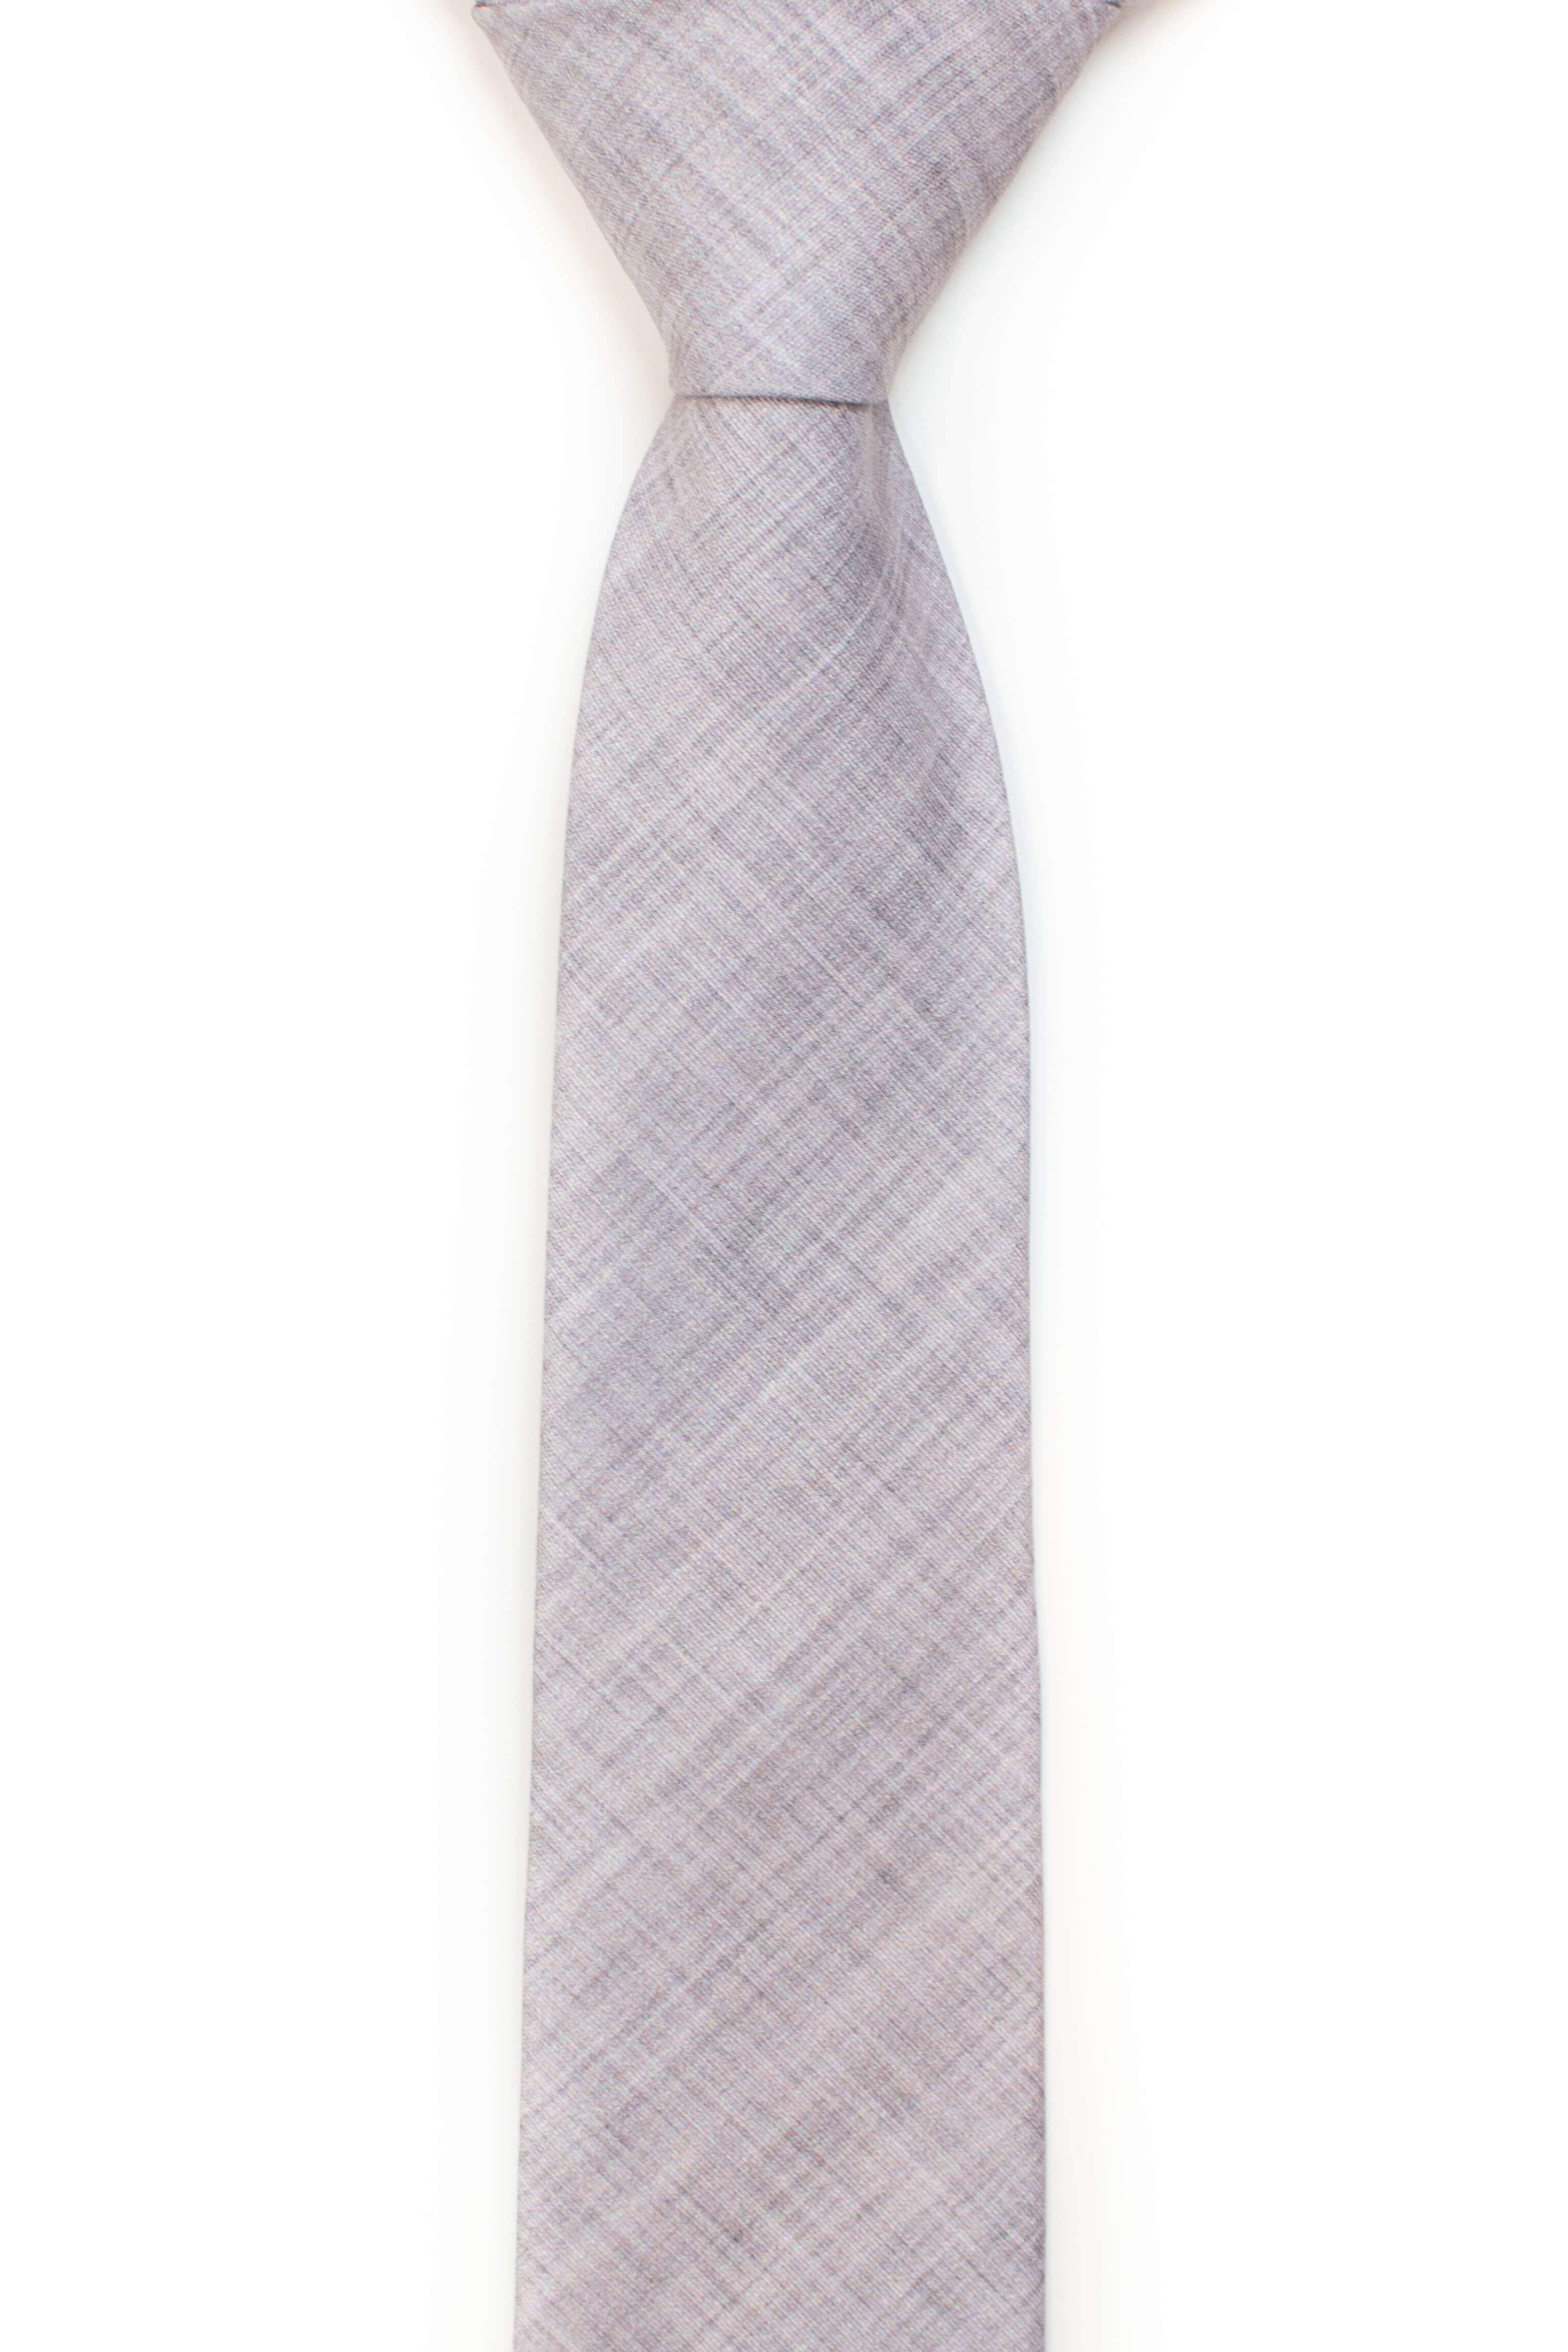 textured solid grey tie from tough apparel